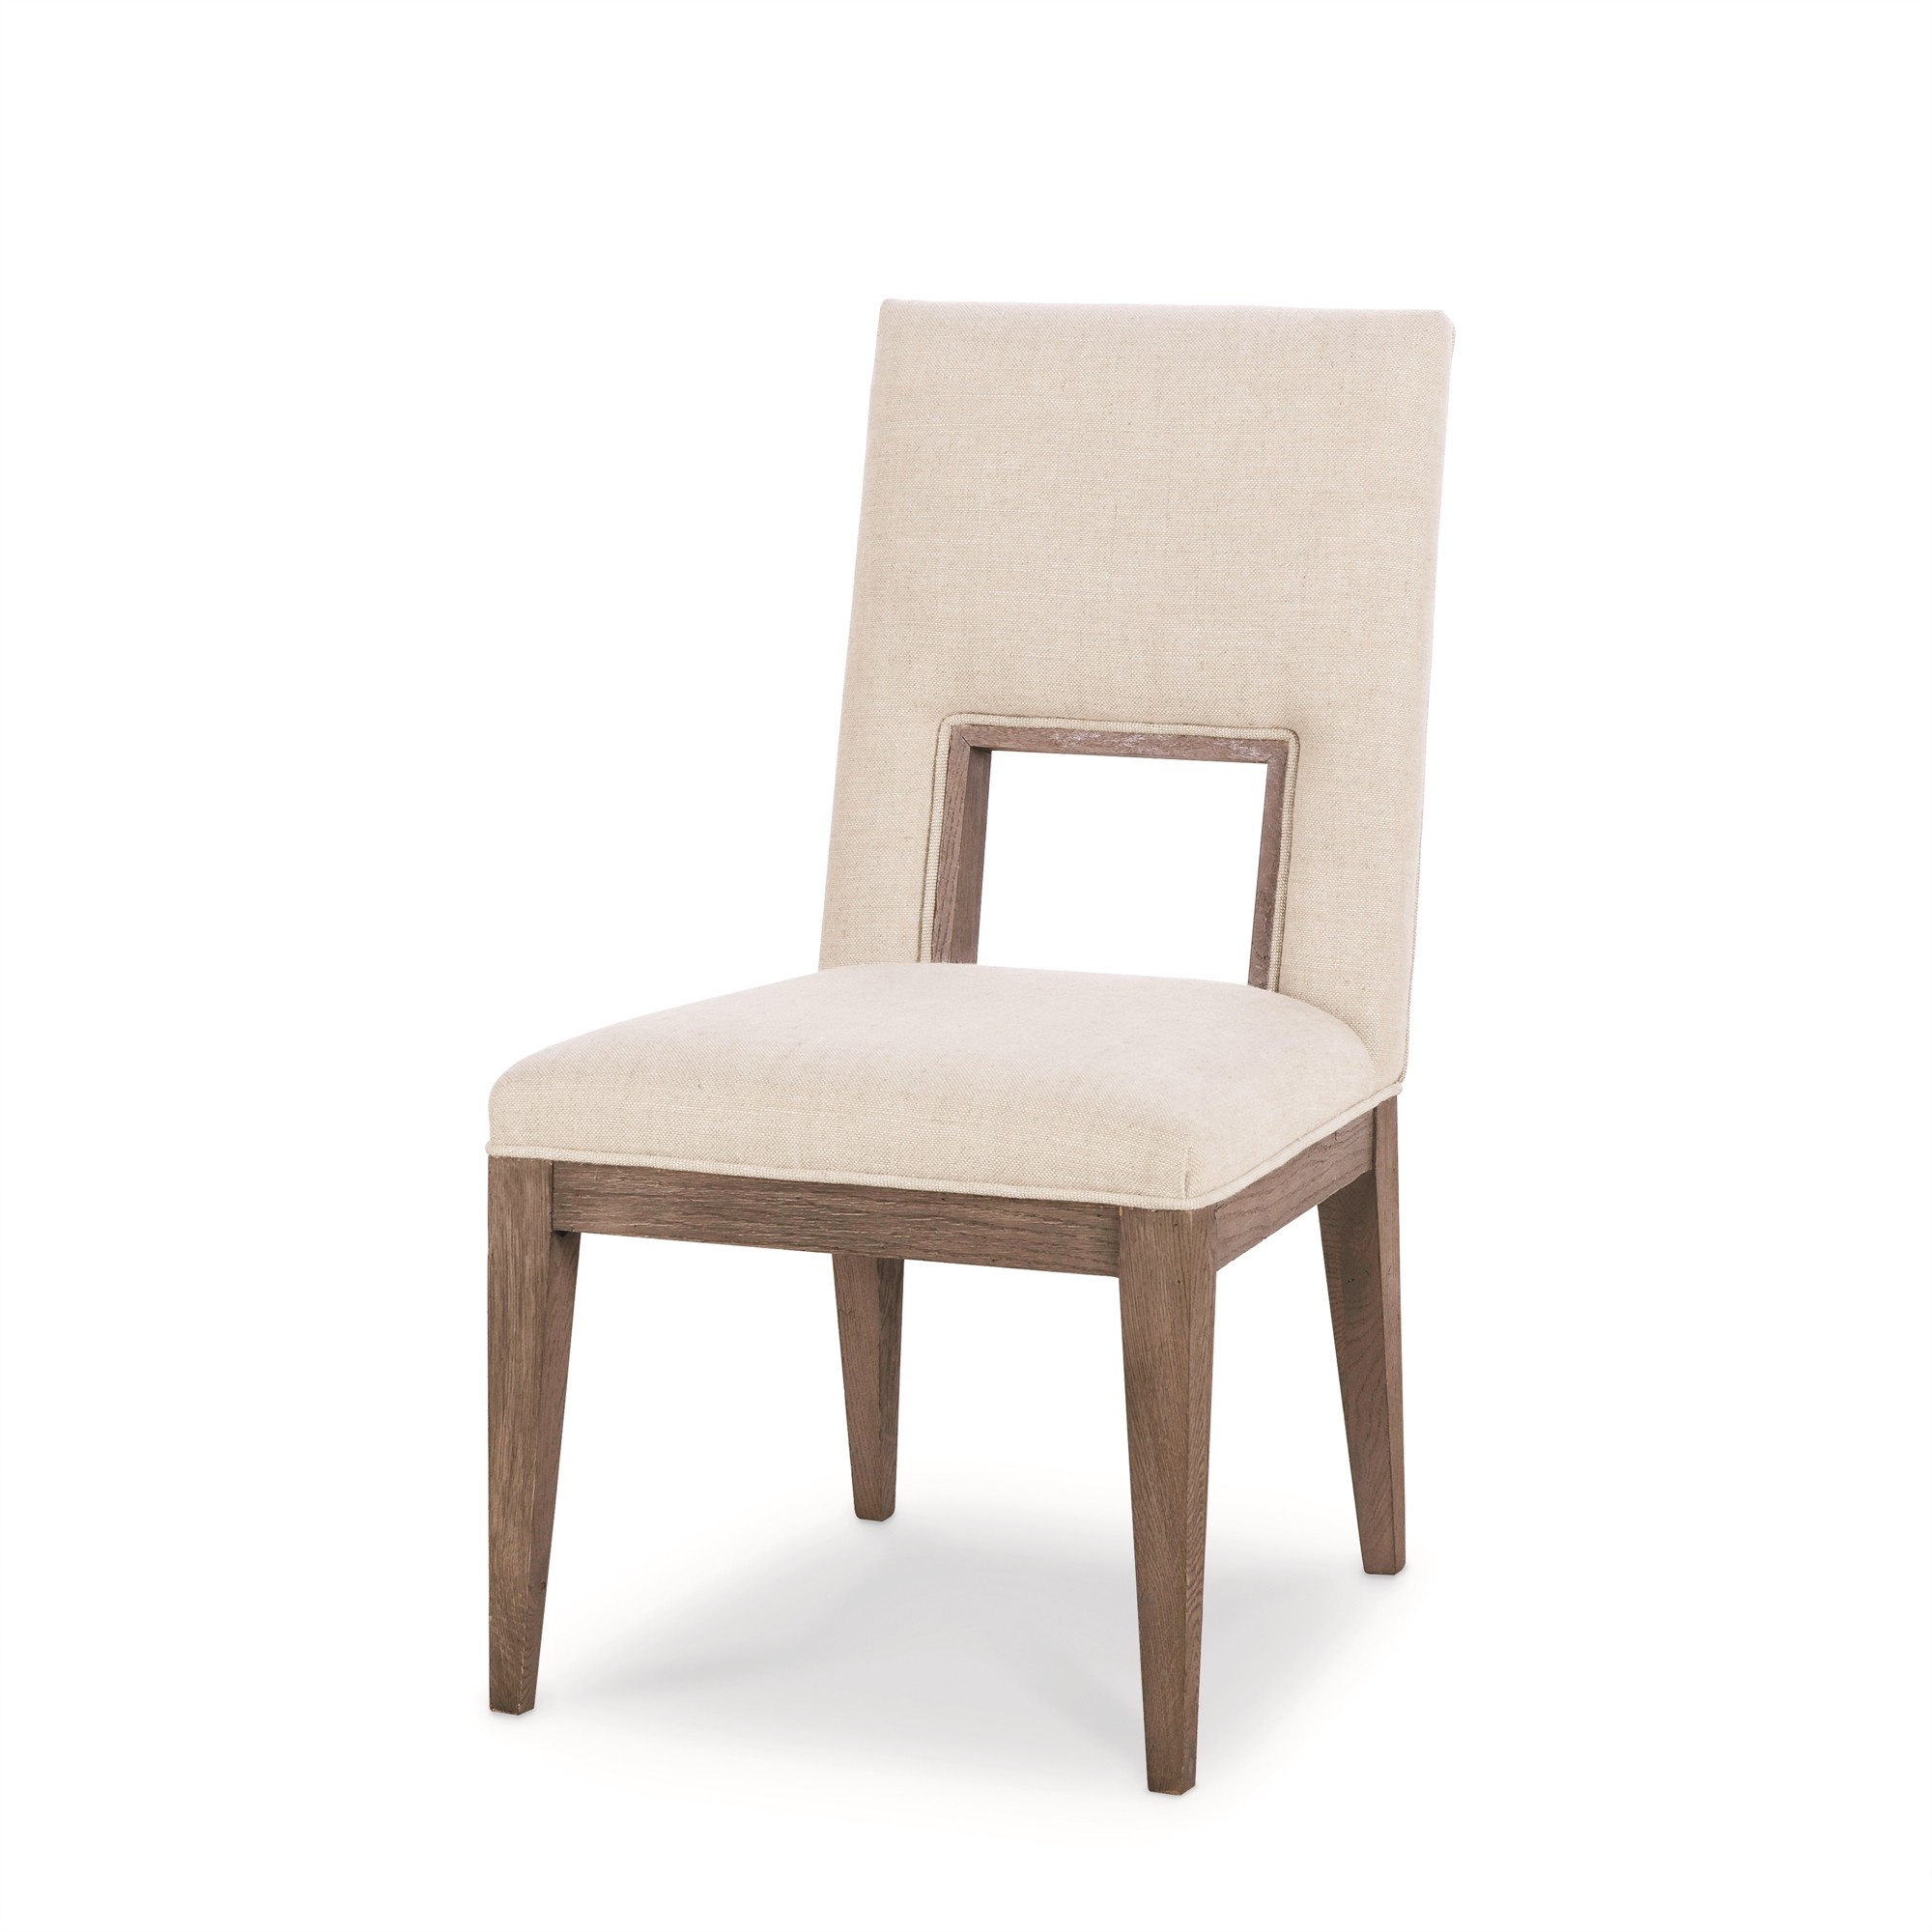 Casa Bella Upholstered Dining Side Chair - Timber Gray Finish